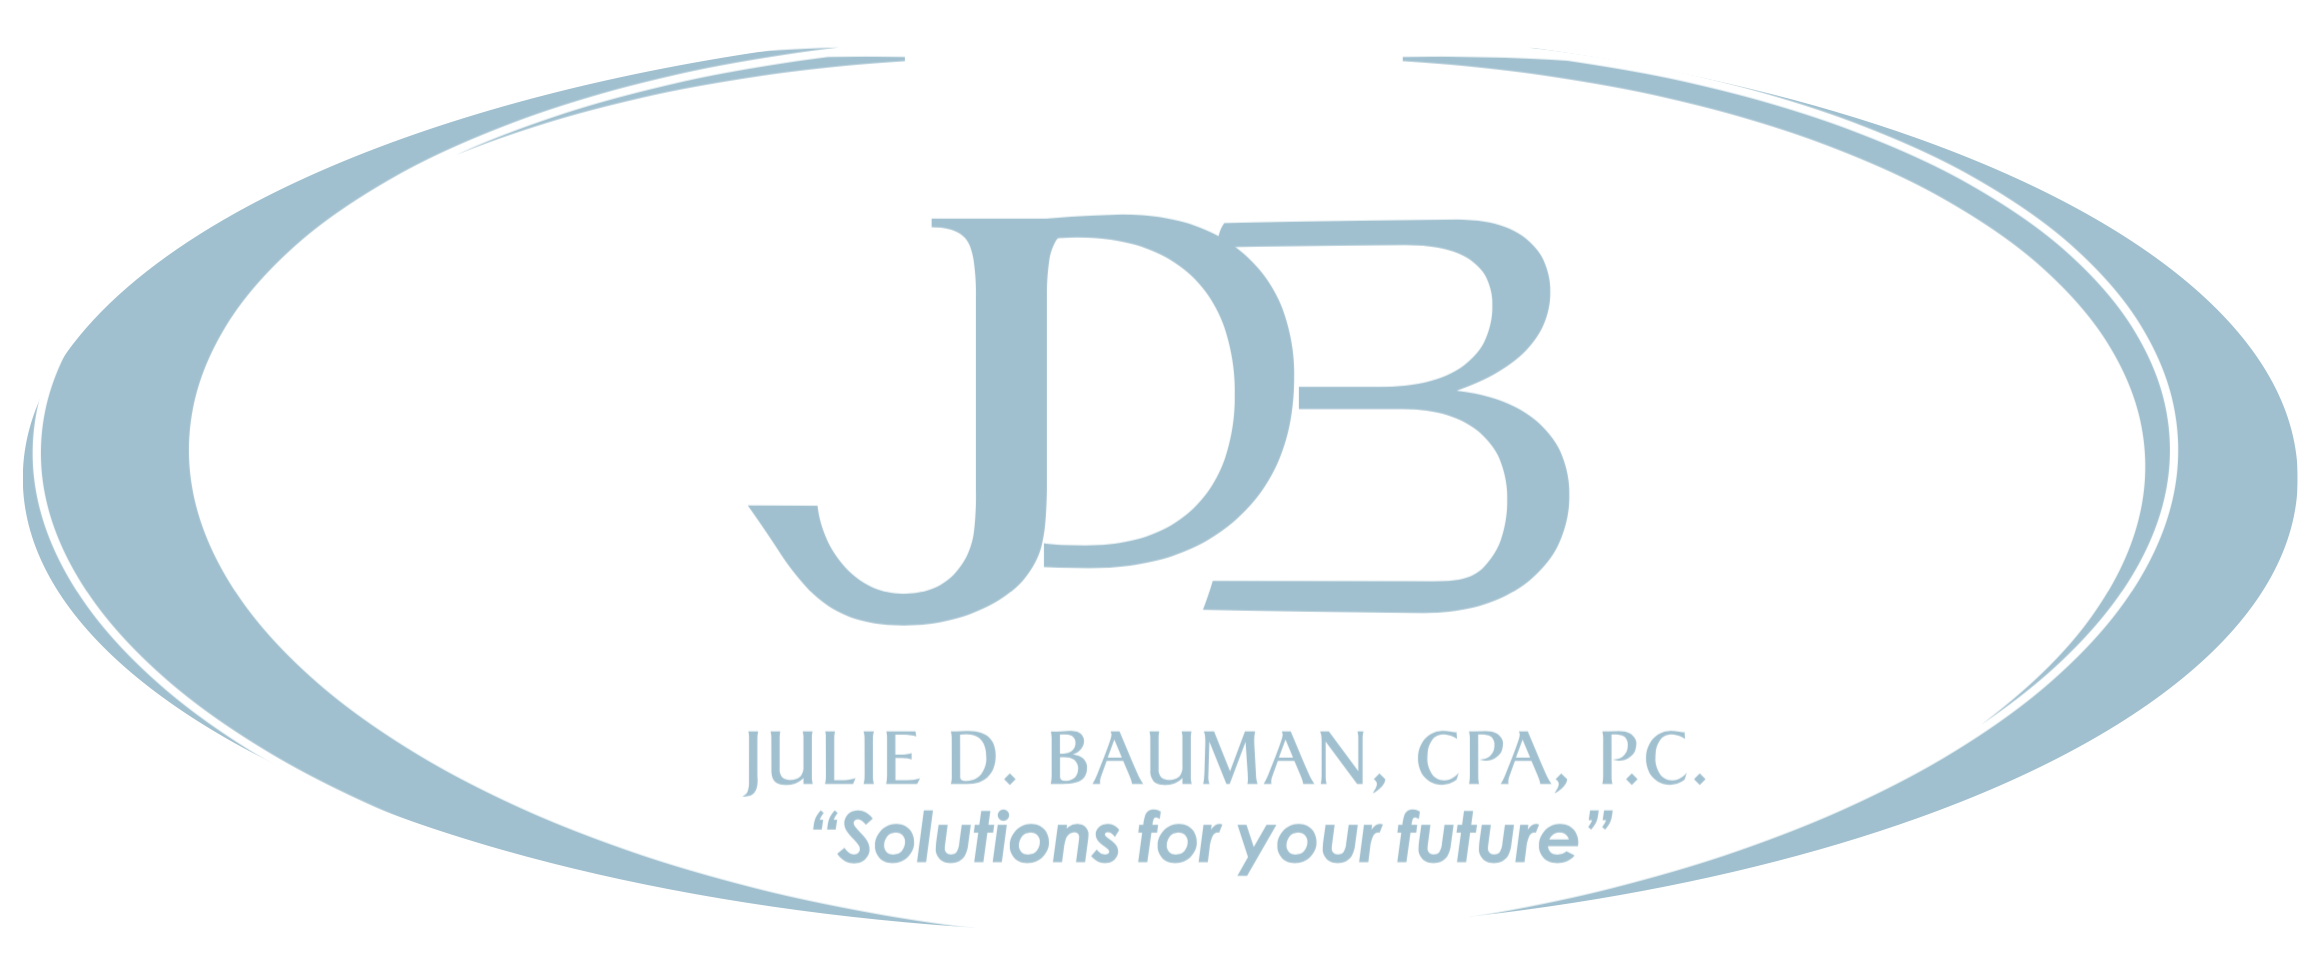 Virtual Accounting Firm | Track Your Refund Page | Julie D. Bauman, CPA, PC